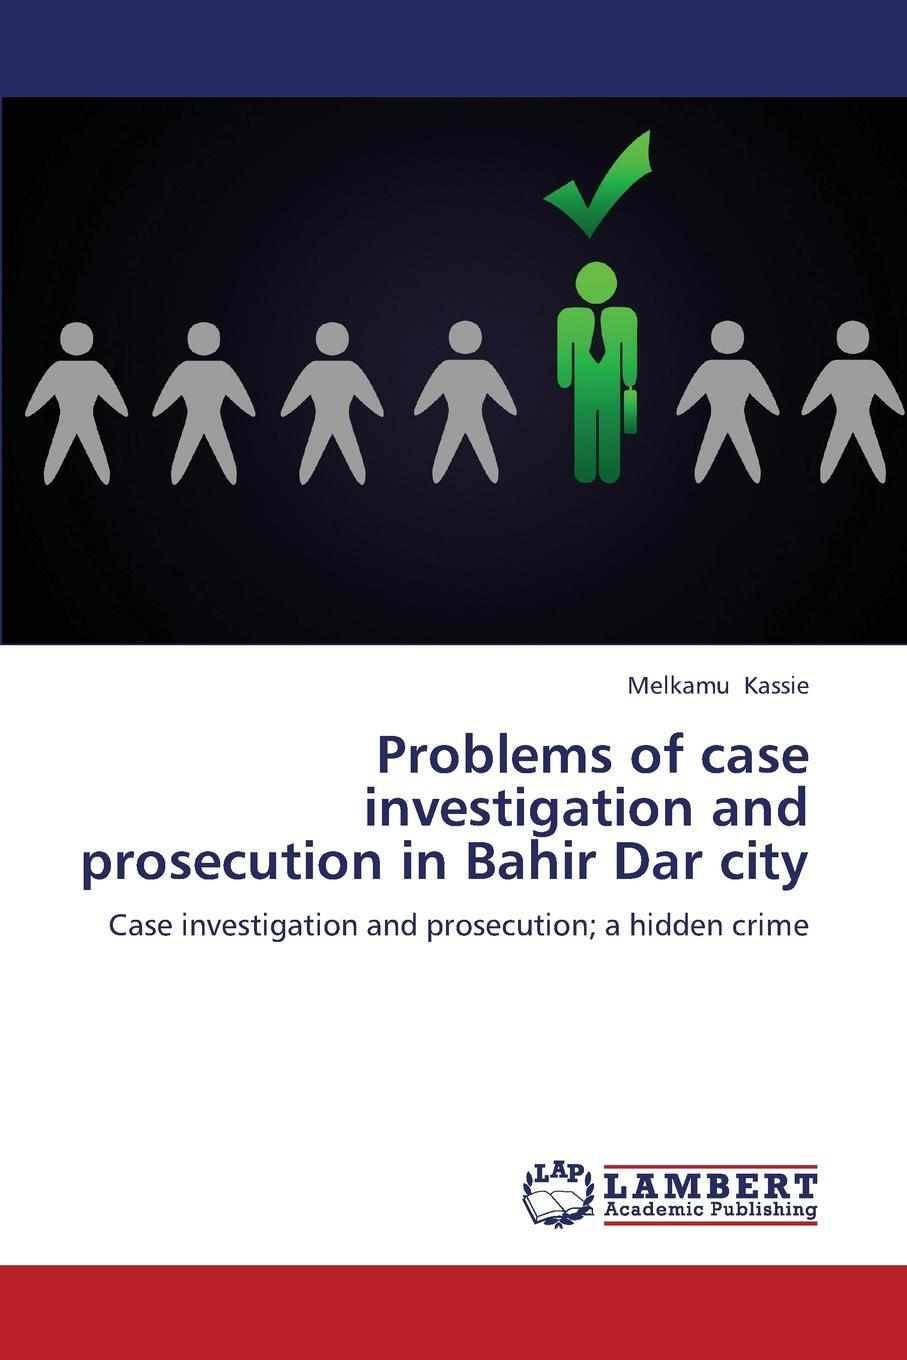 Problems of case investigation and prosecution in Bahir Dar city. Kassie Melkamu